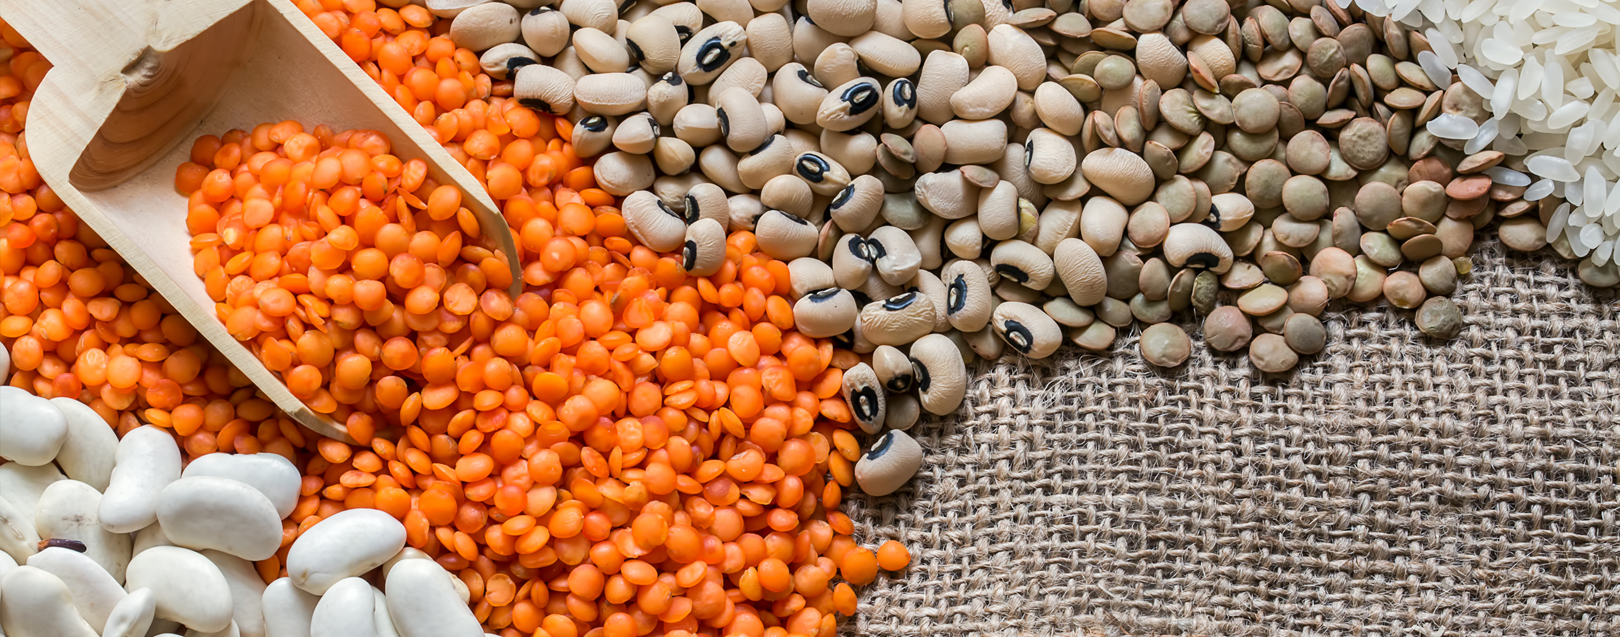 Govt lifts ban on export of all varieties of pulses